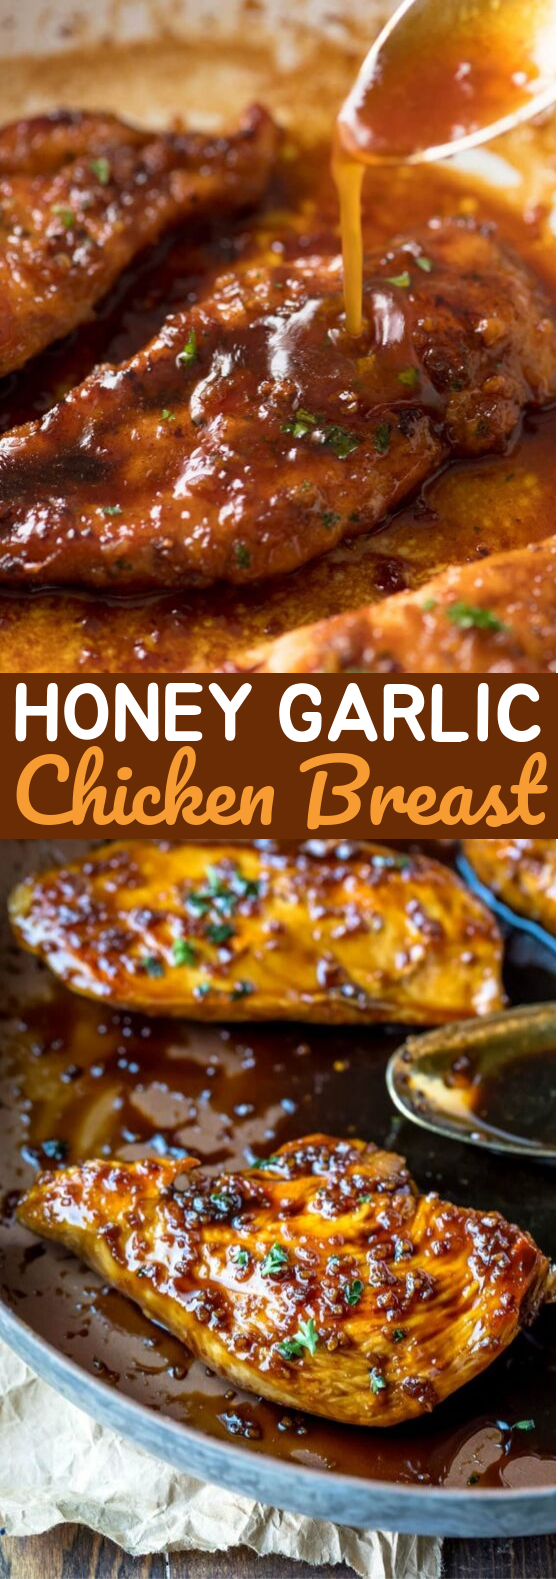 Honey Garlic Chicken Breast #dinner #chicken